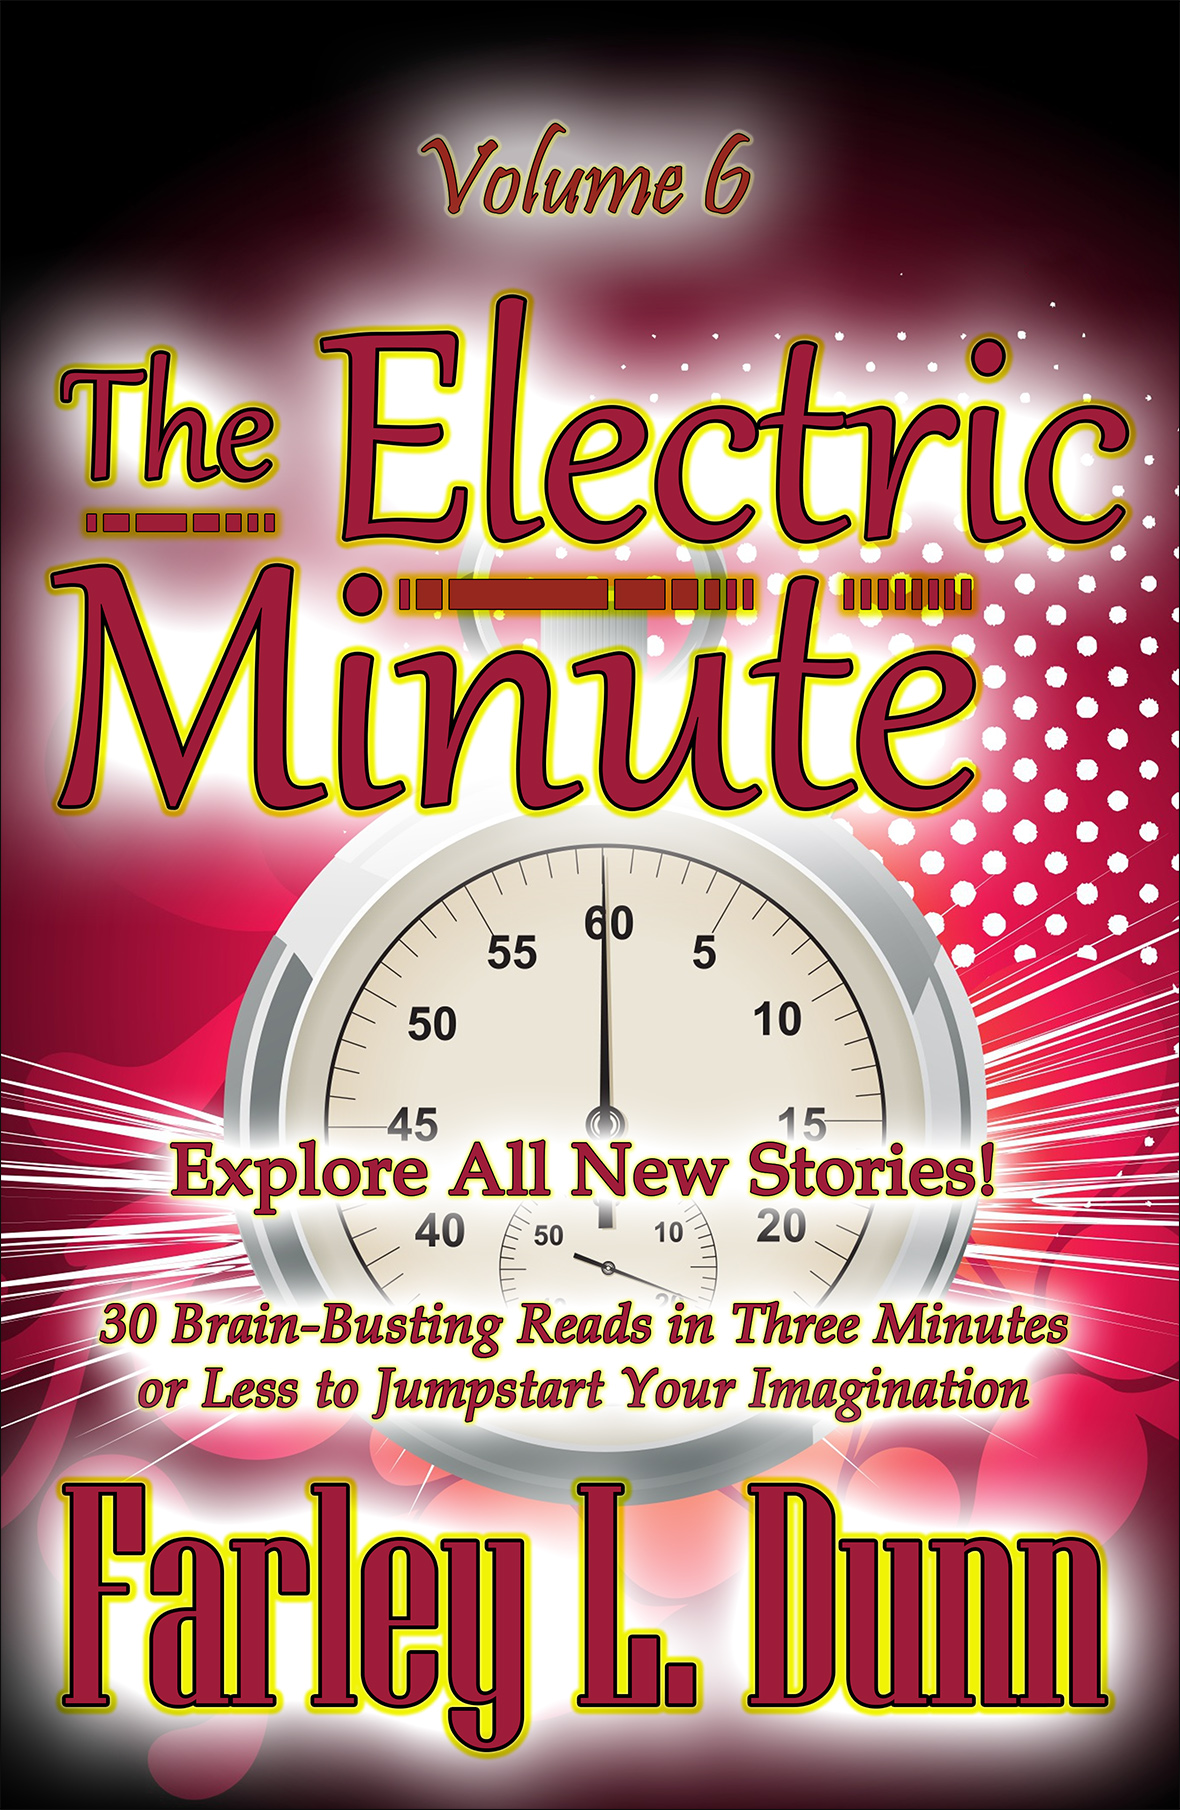 The Electric Minute Cover Vol 6 Front V1 for web insertion